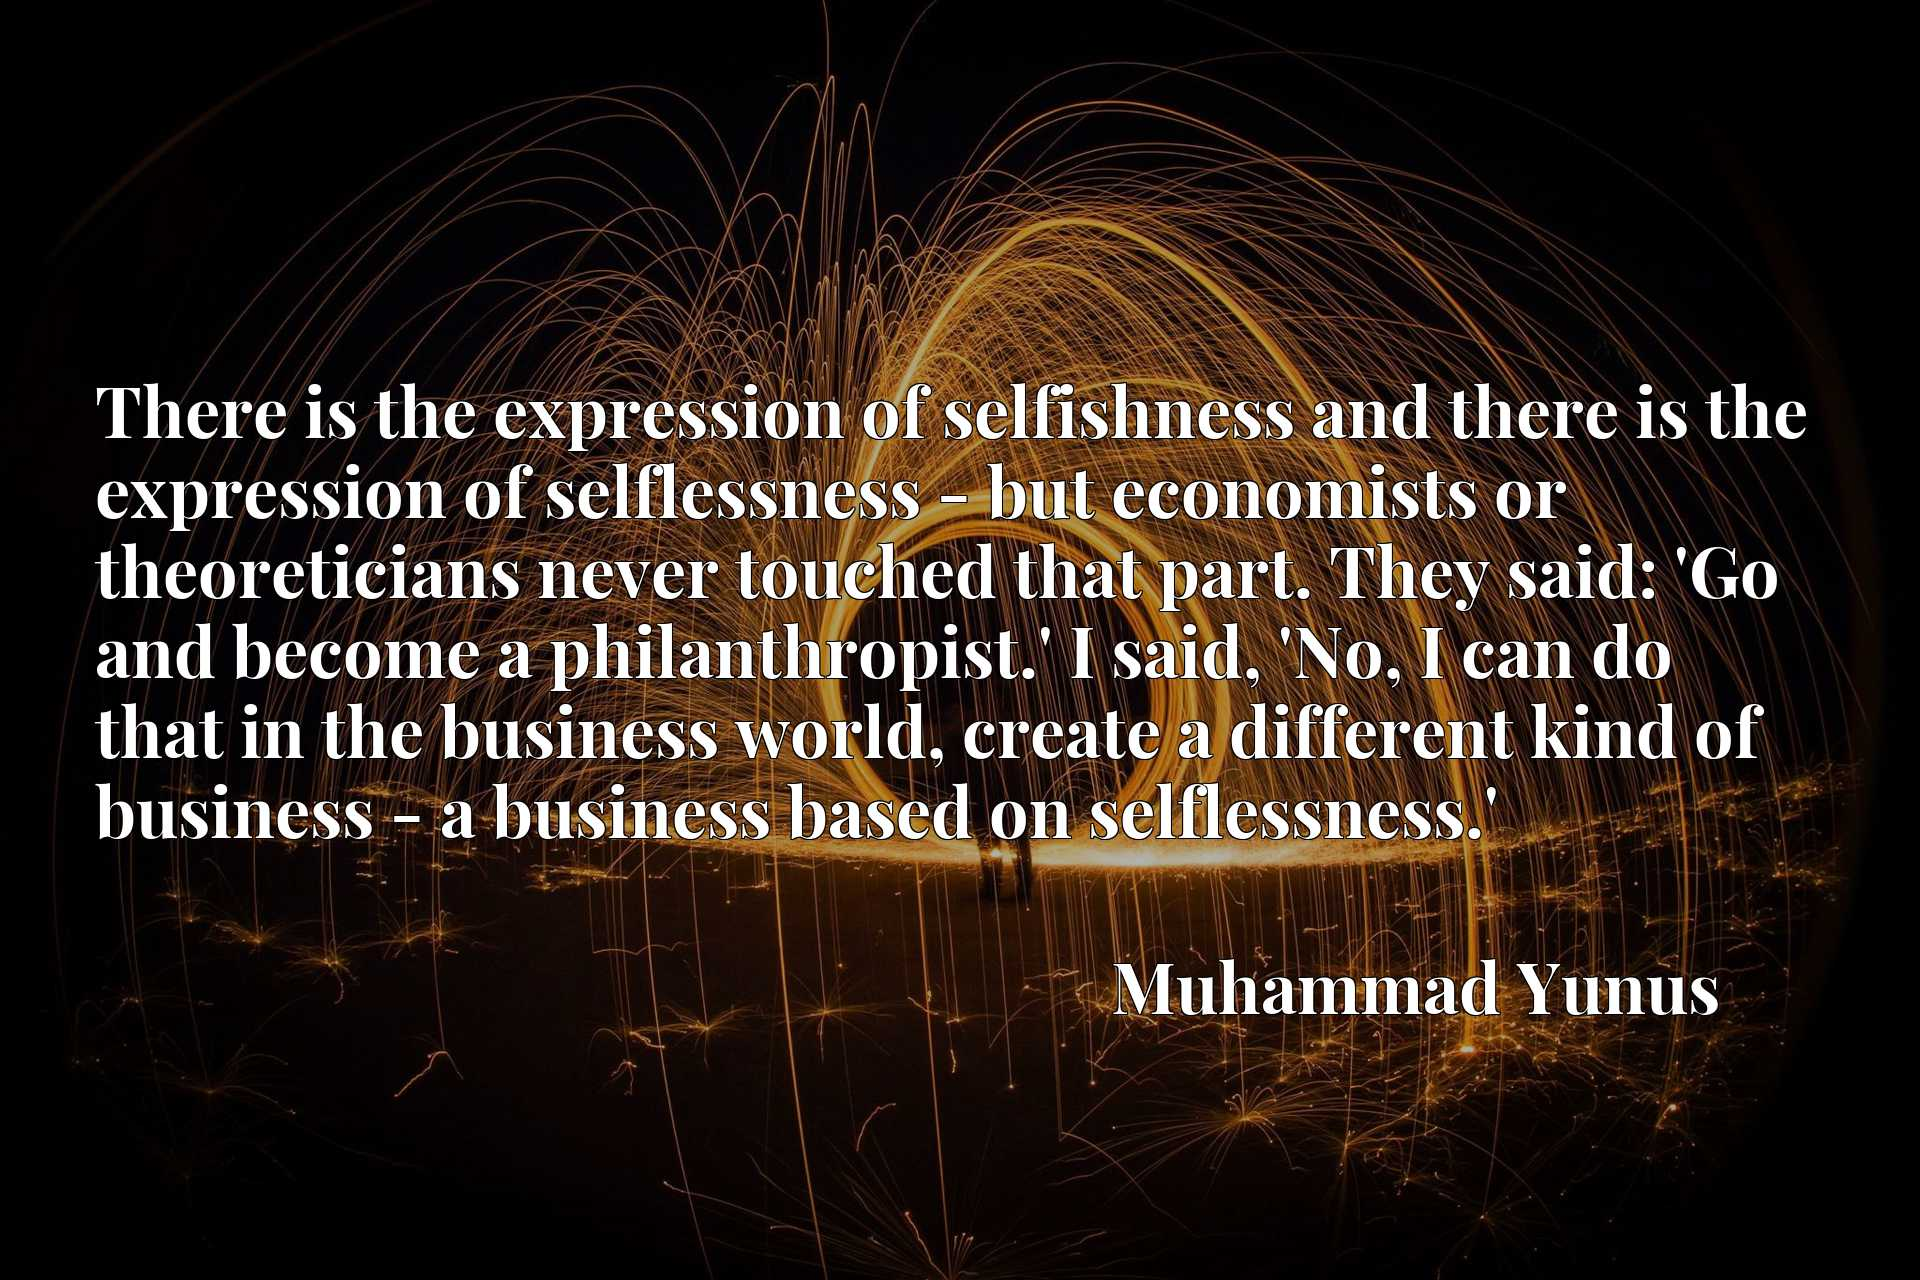 There is the expression of selfishness and there is the expression of selflessness - but economists or theoreticians never touched that part. They said: 'Go and become a philanthropist.' I said, 'No, I can do that in the business world, create a different kind of business - a business based on selflessness.'